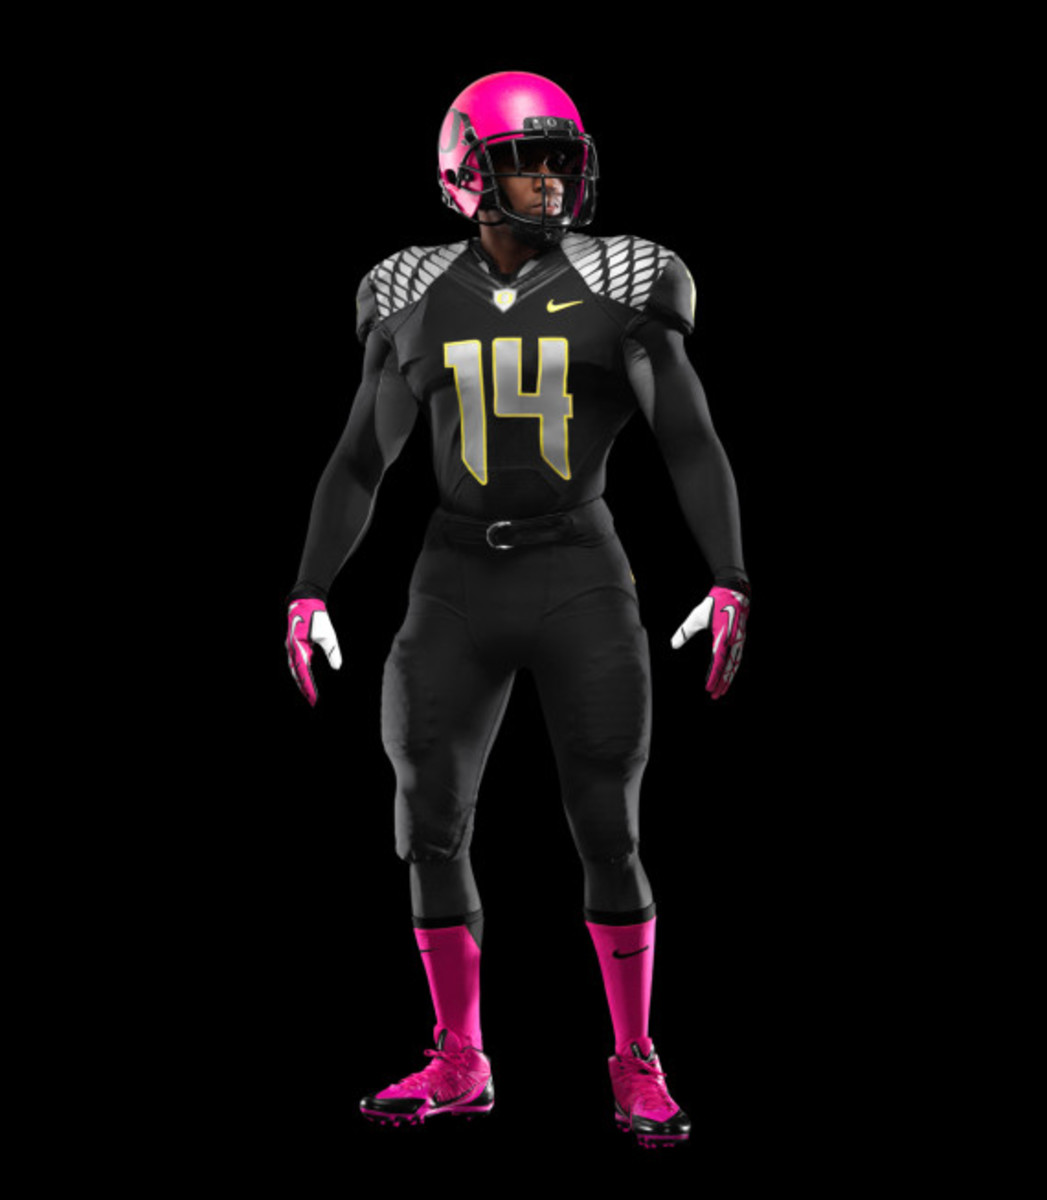 nike-oregon-ducks-football-pays-tribute-to-breast-cancer-awareness-04